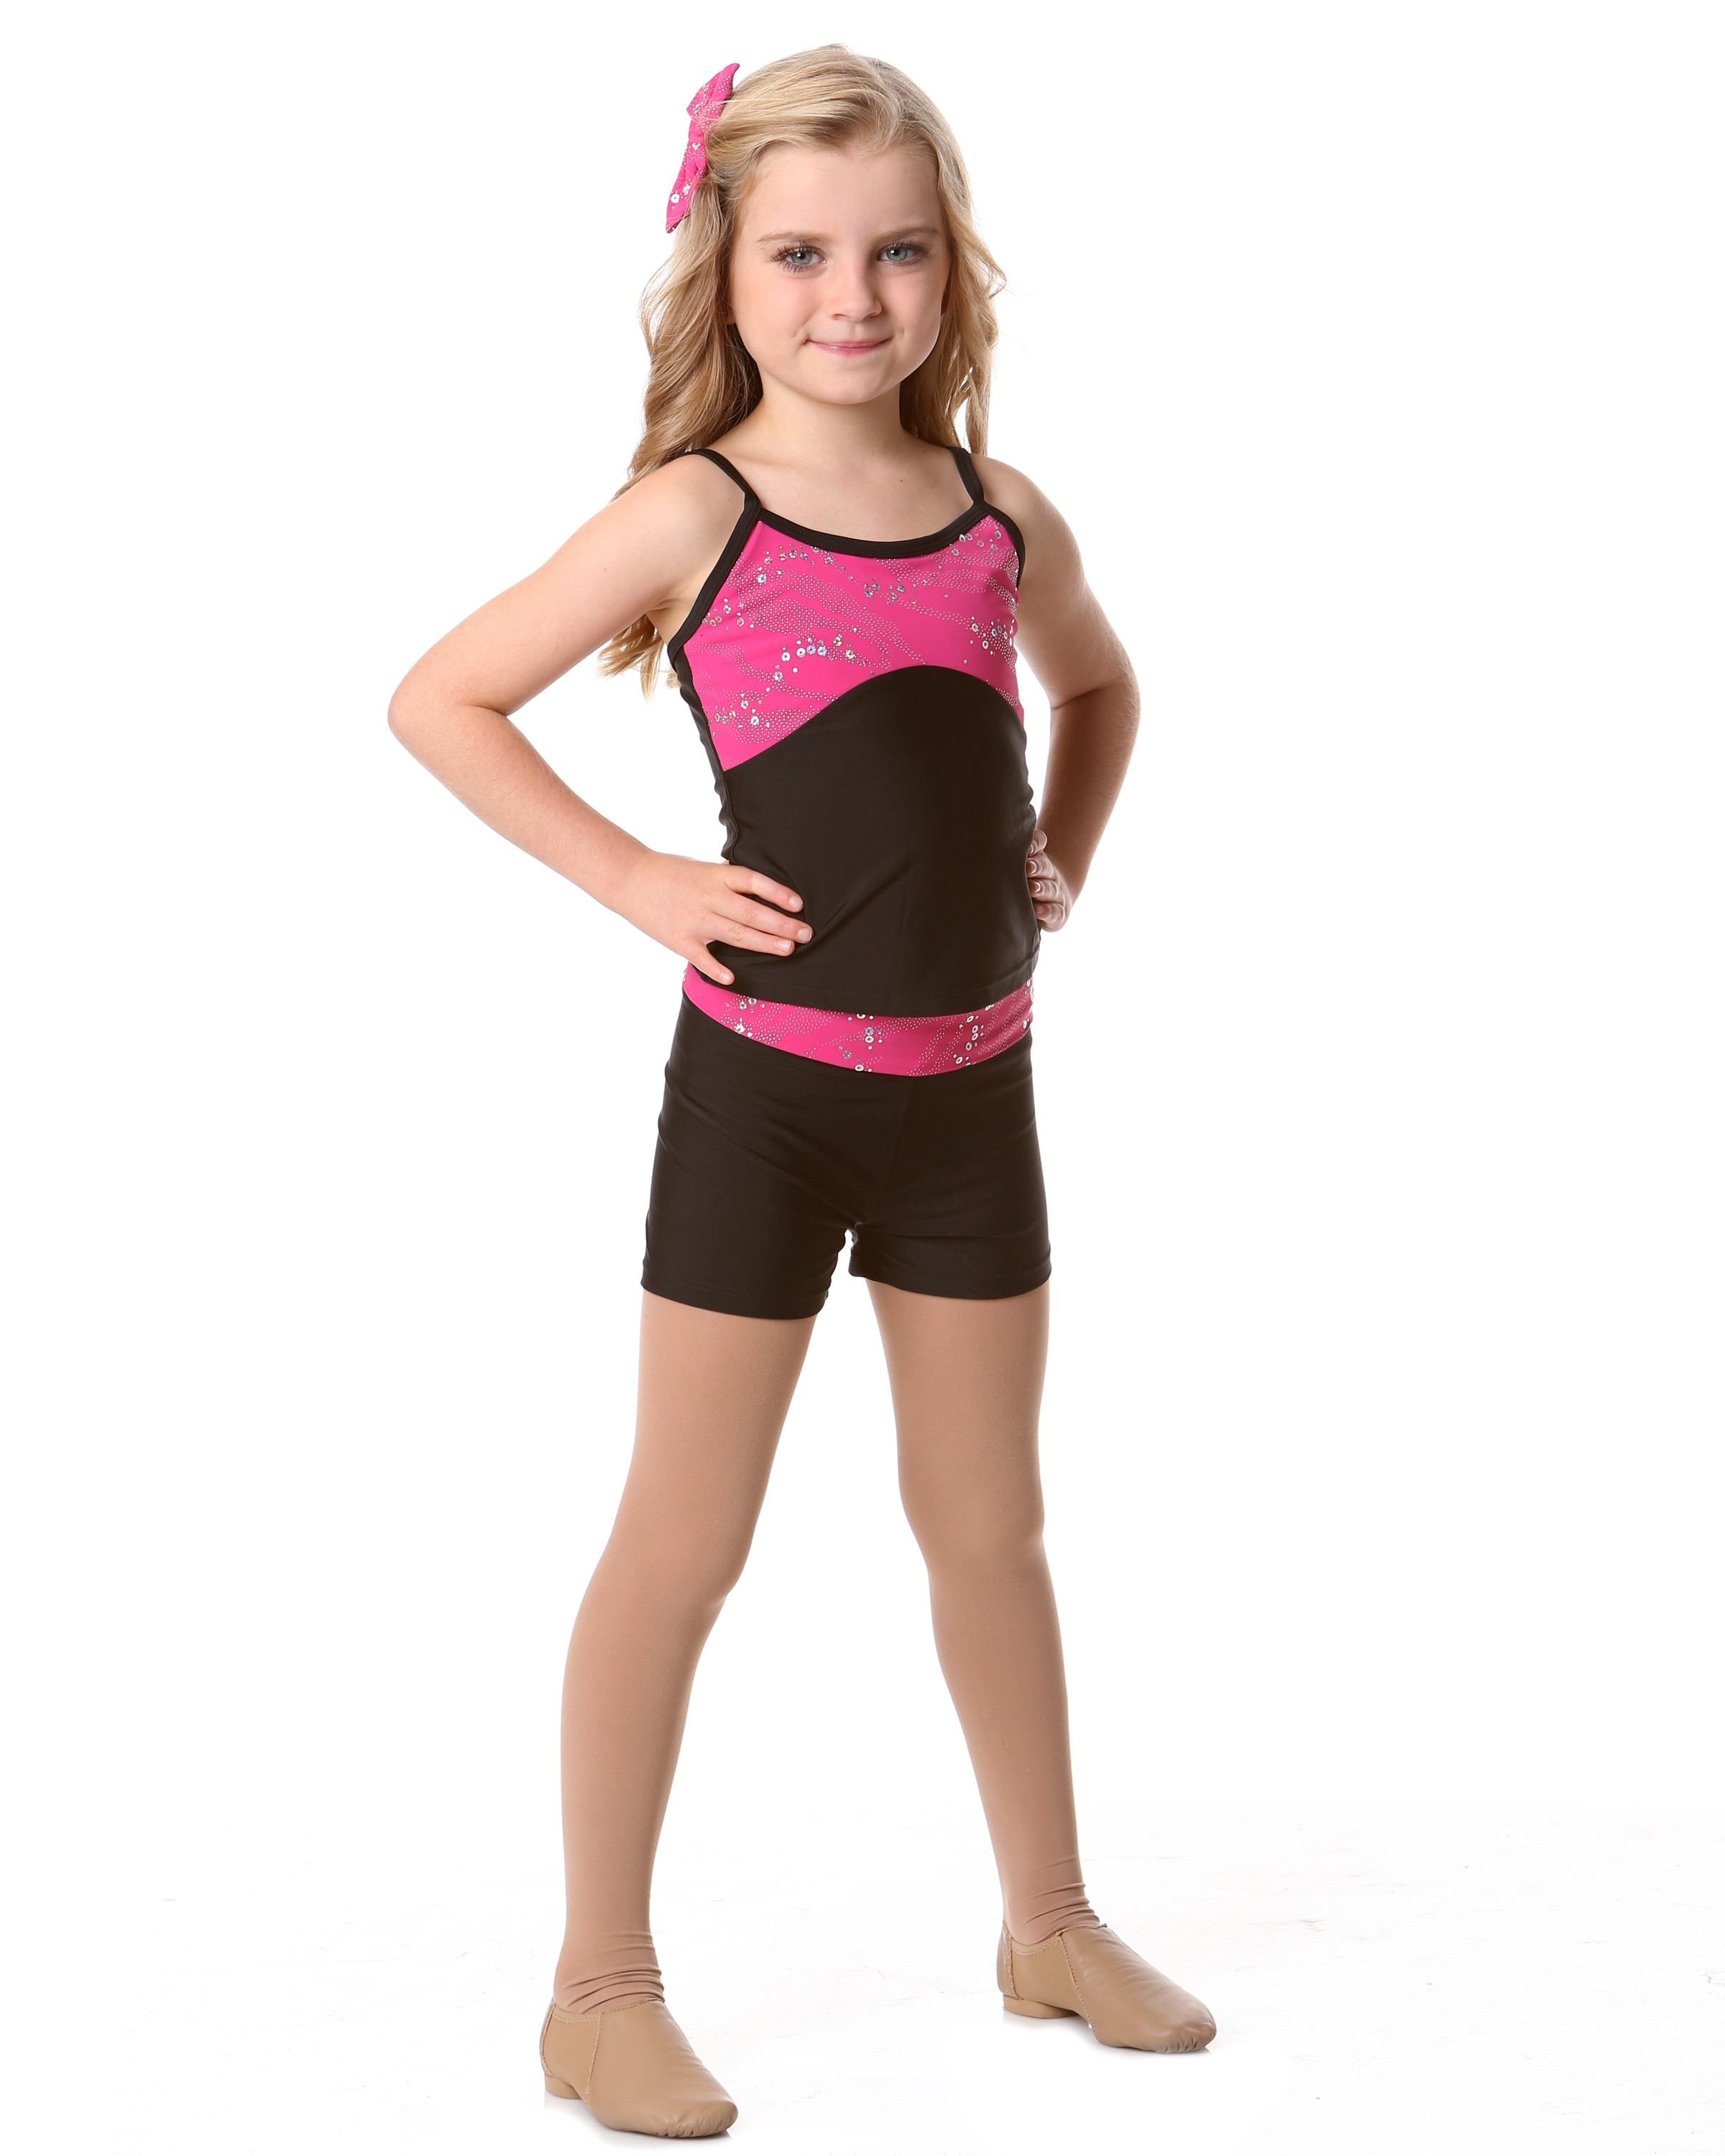 Studio 7 Glitter Camisole Singlet Top - Childs